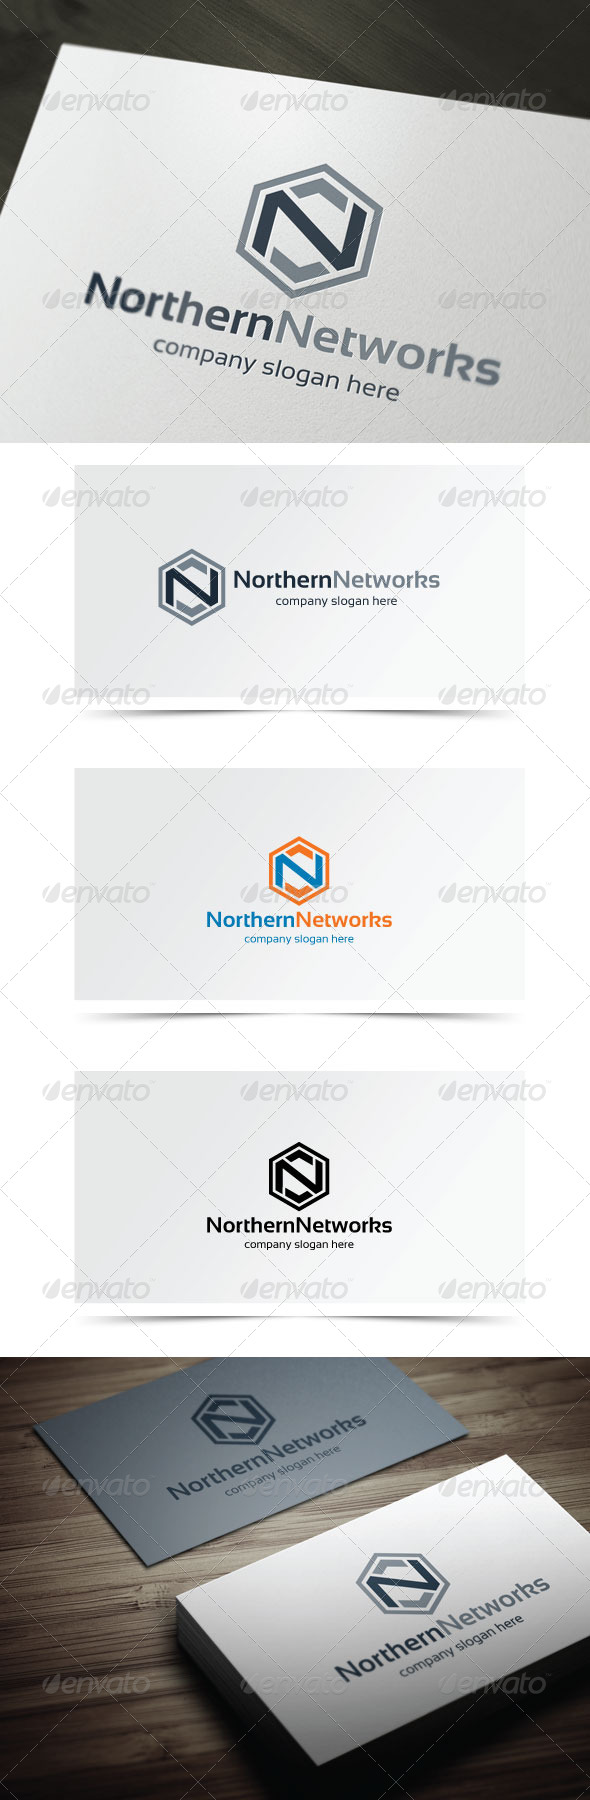 Northern Networks - Letters Logo Templates